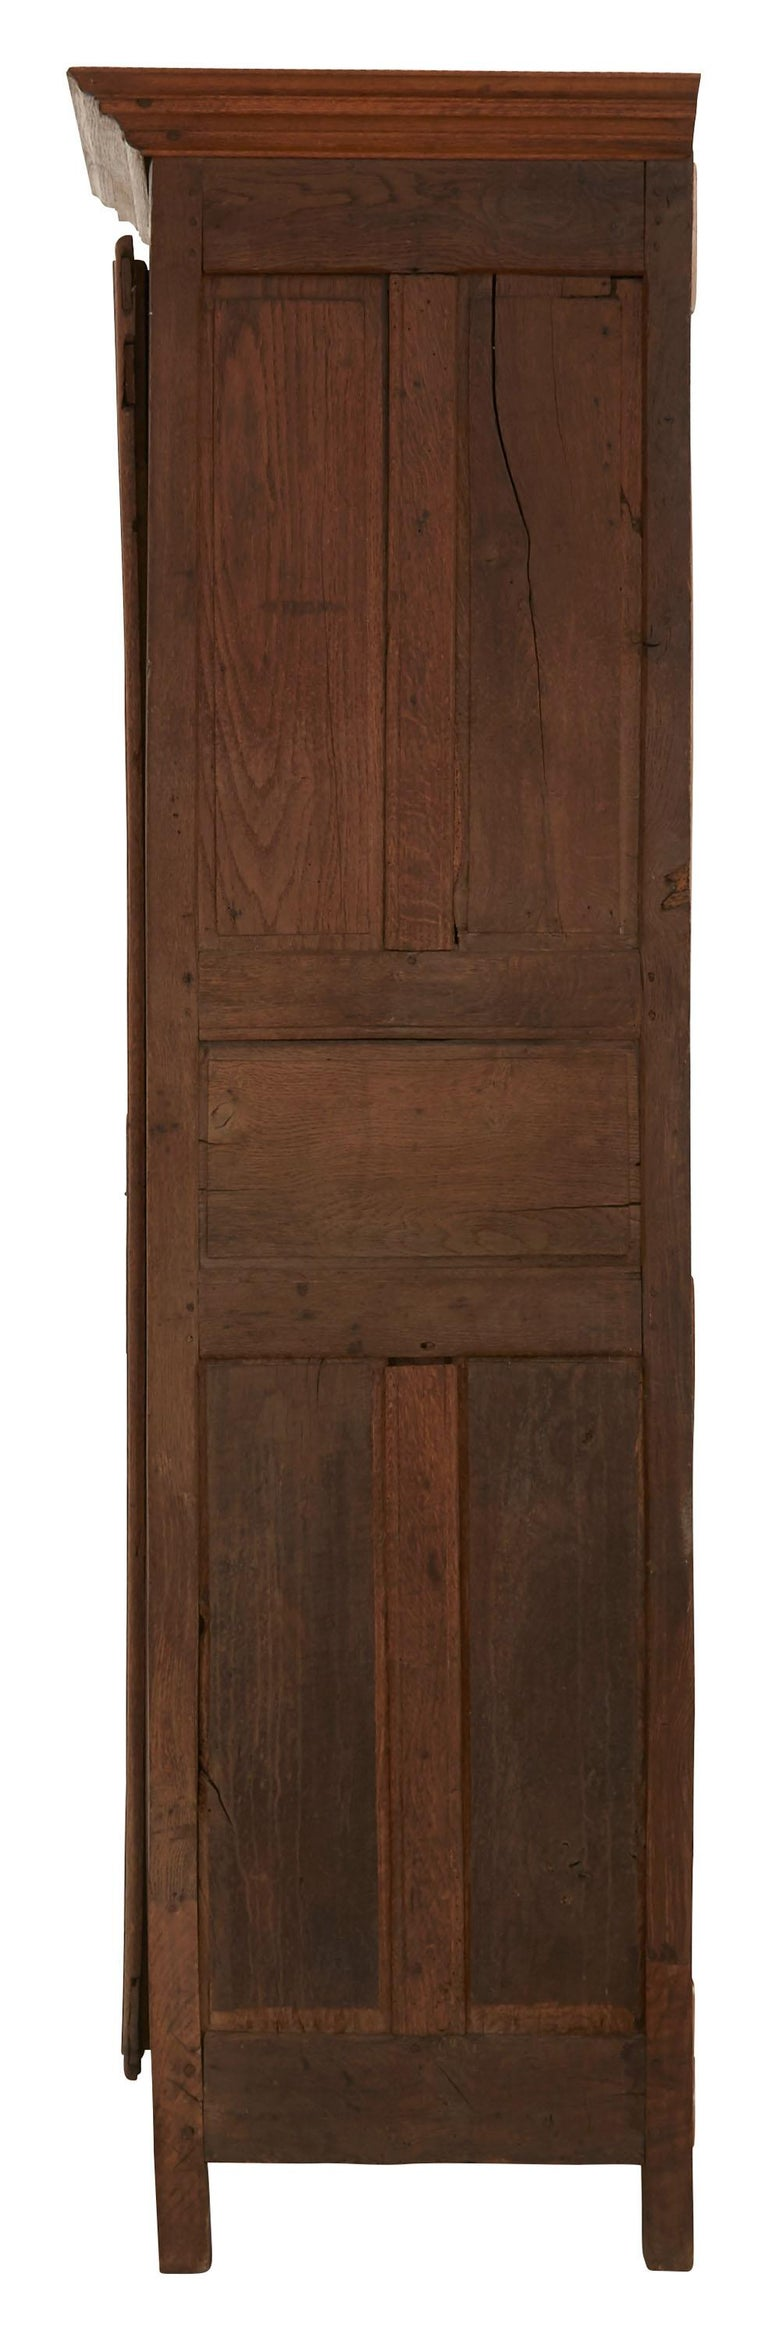 Late 19th Century French Wooden Wardrobe In Good Condition For Sale In Chicago, IL